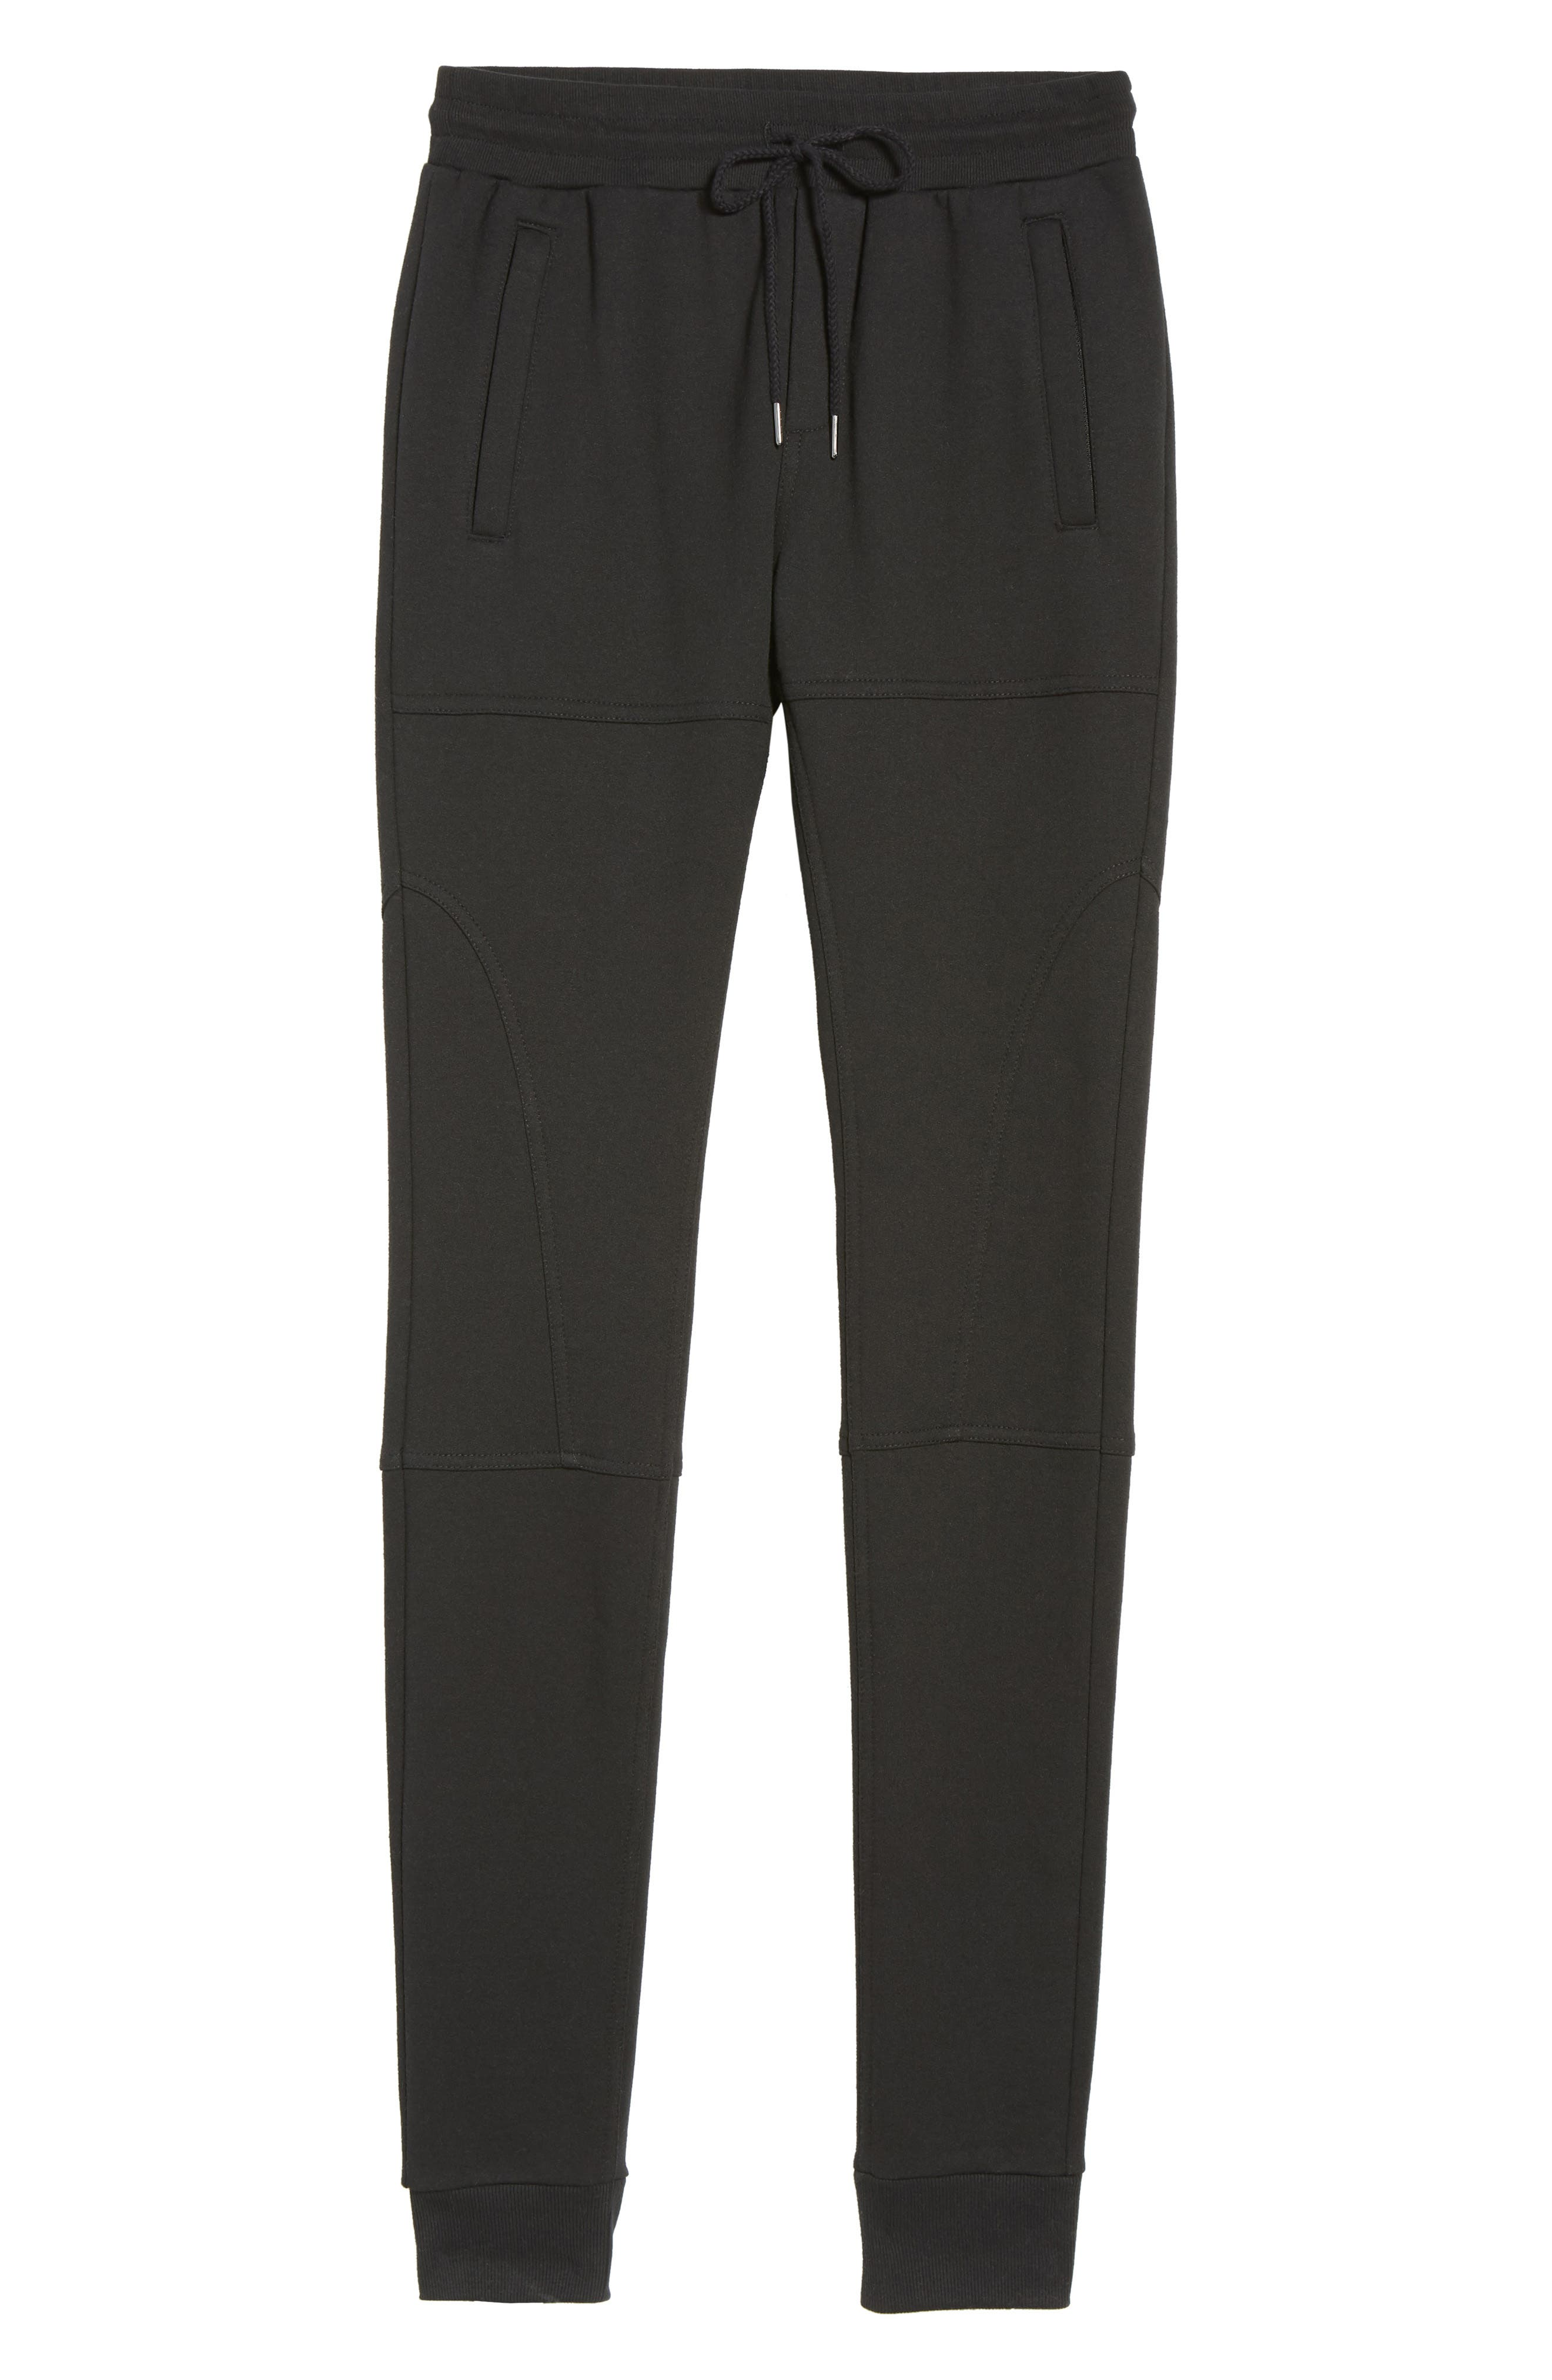 French Terry Sweatpants,                             Alternate thumbnail 6, color,                             001